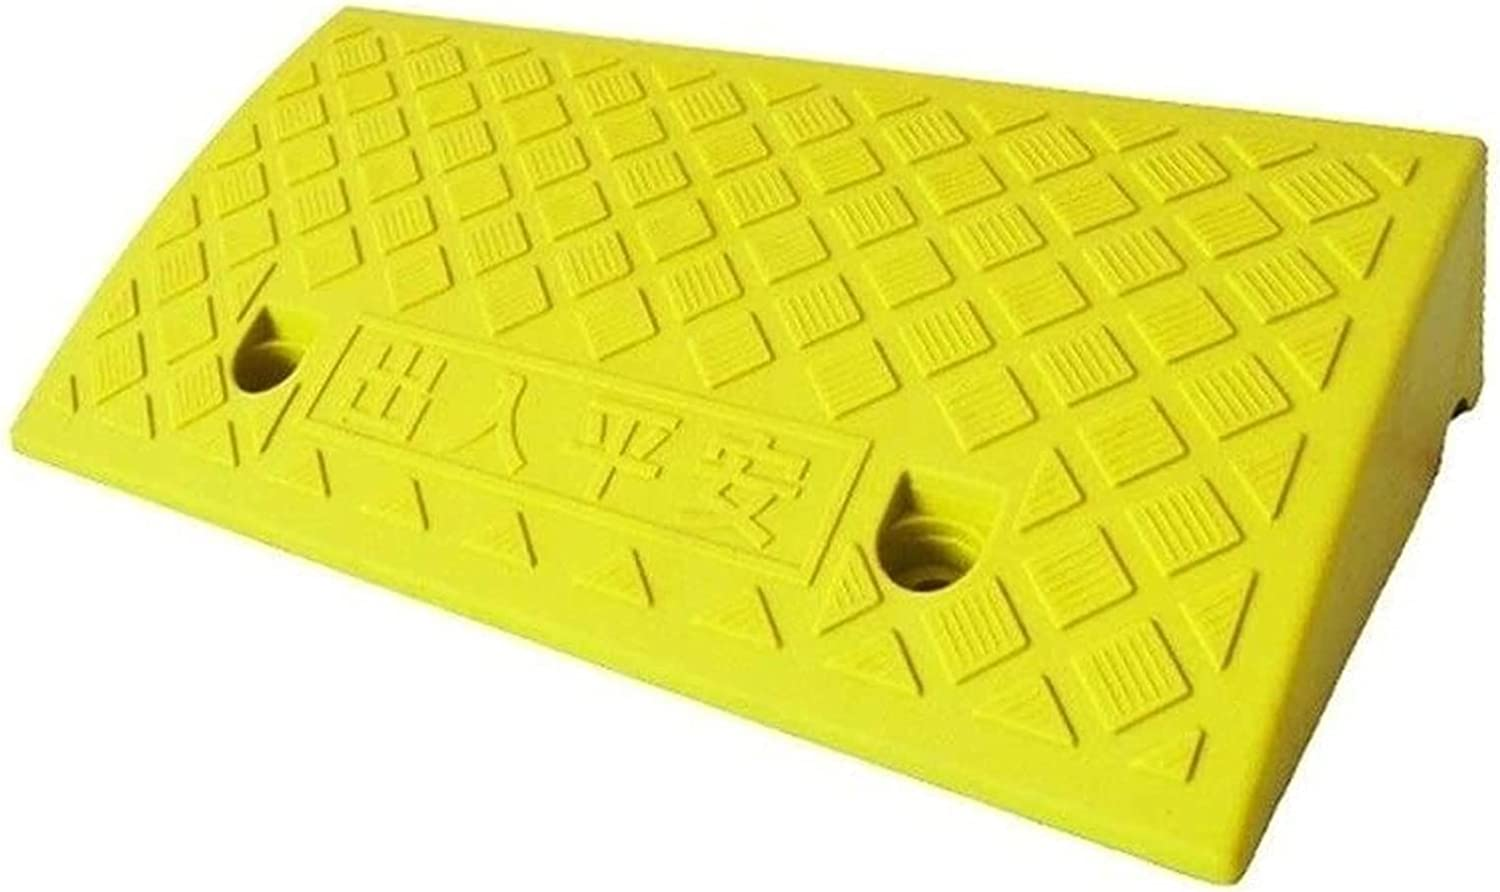 Gwendolyn Inventory cleanup selling sale shed ramps Yellow Eye-catching Yell Ramps Kindergarten favorite